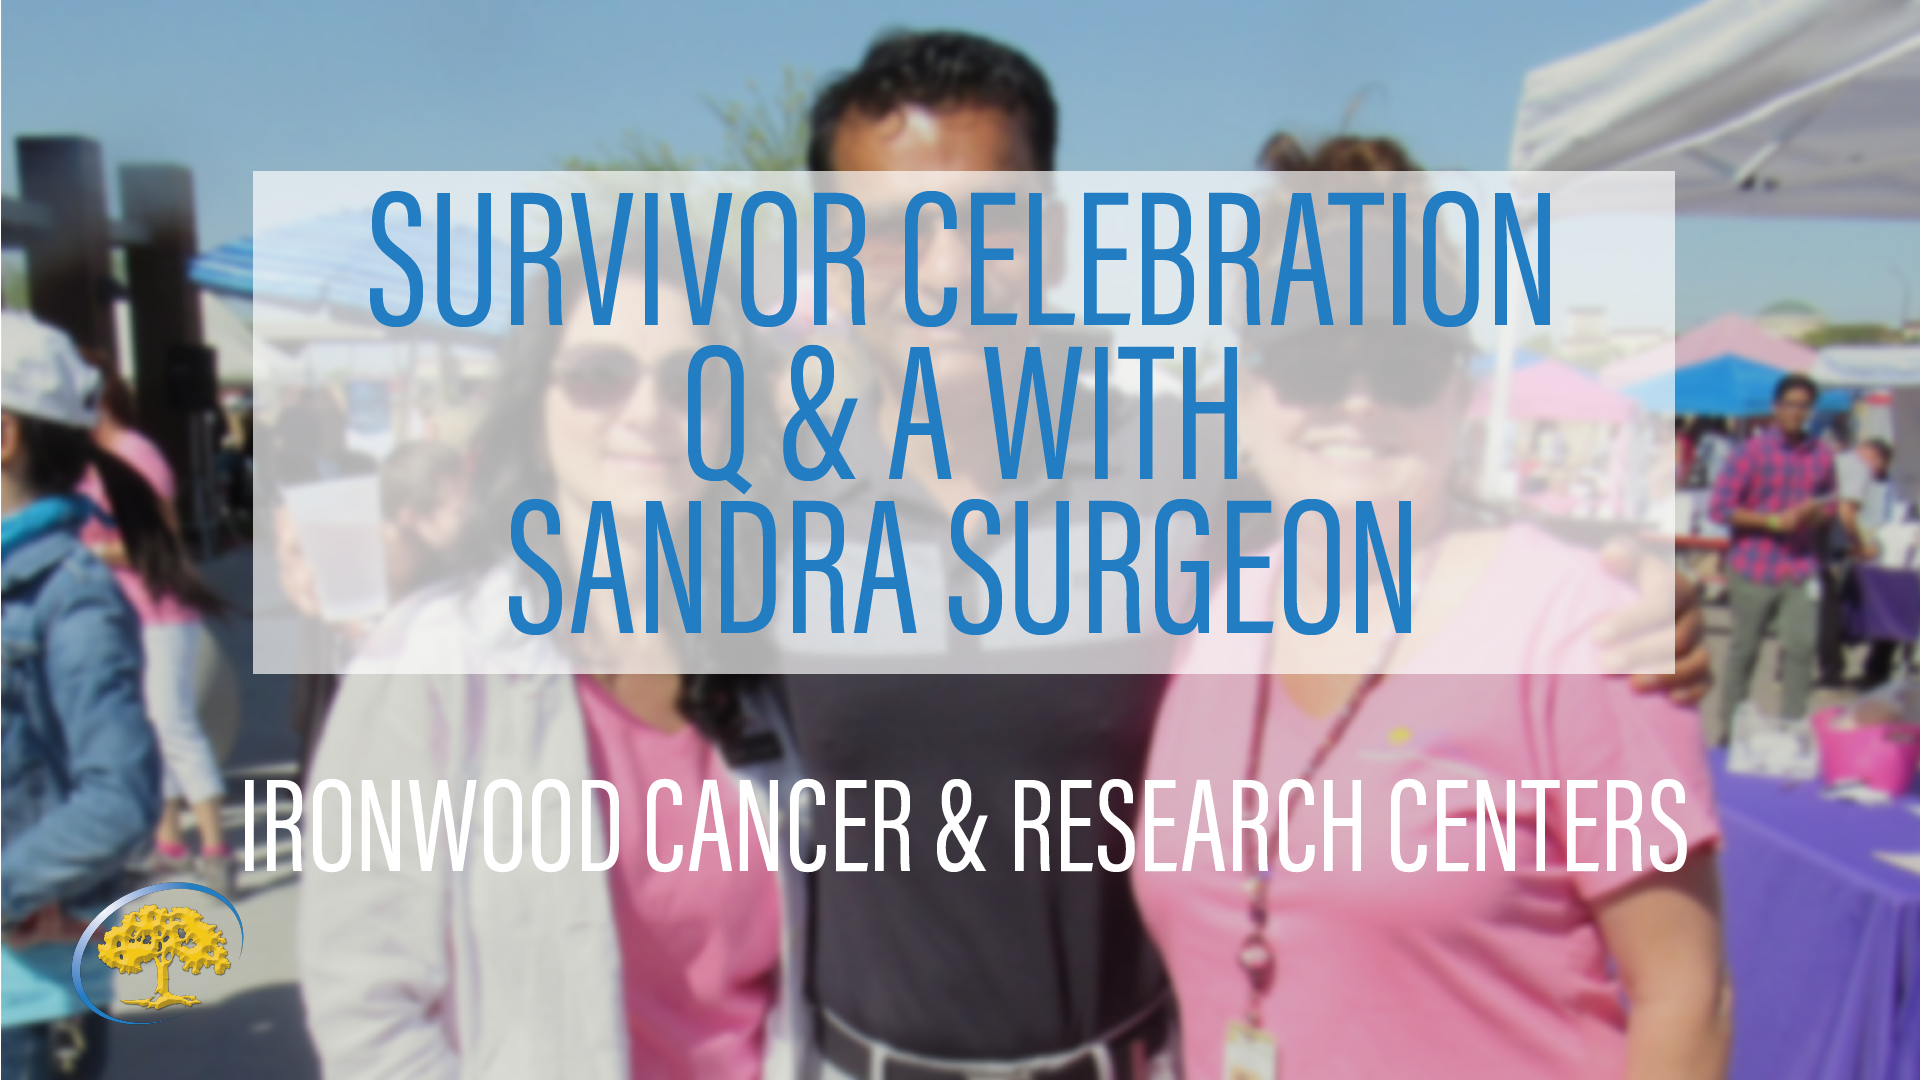 Survivor Celebration Q& A with Sandra Surgeon